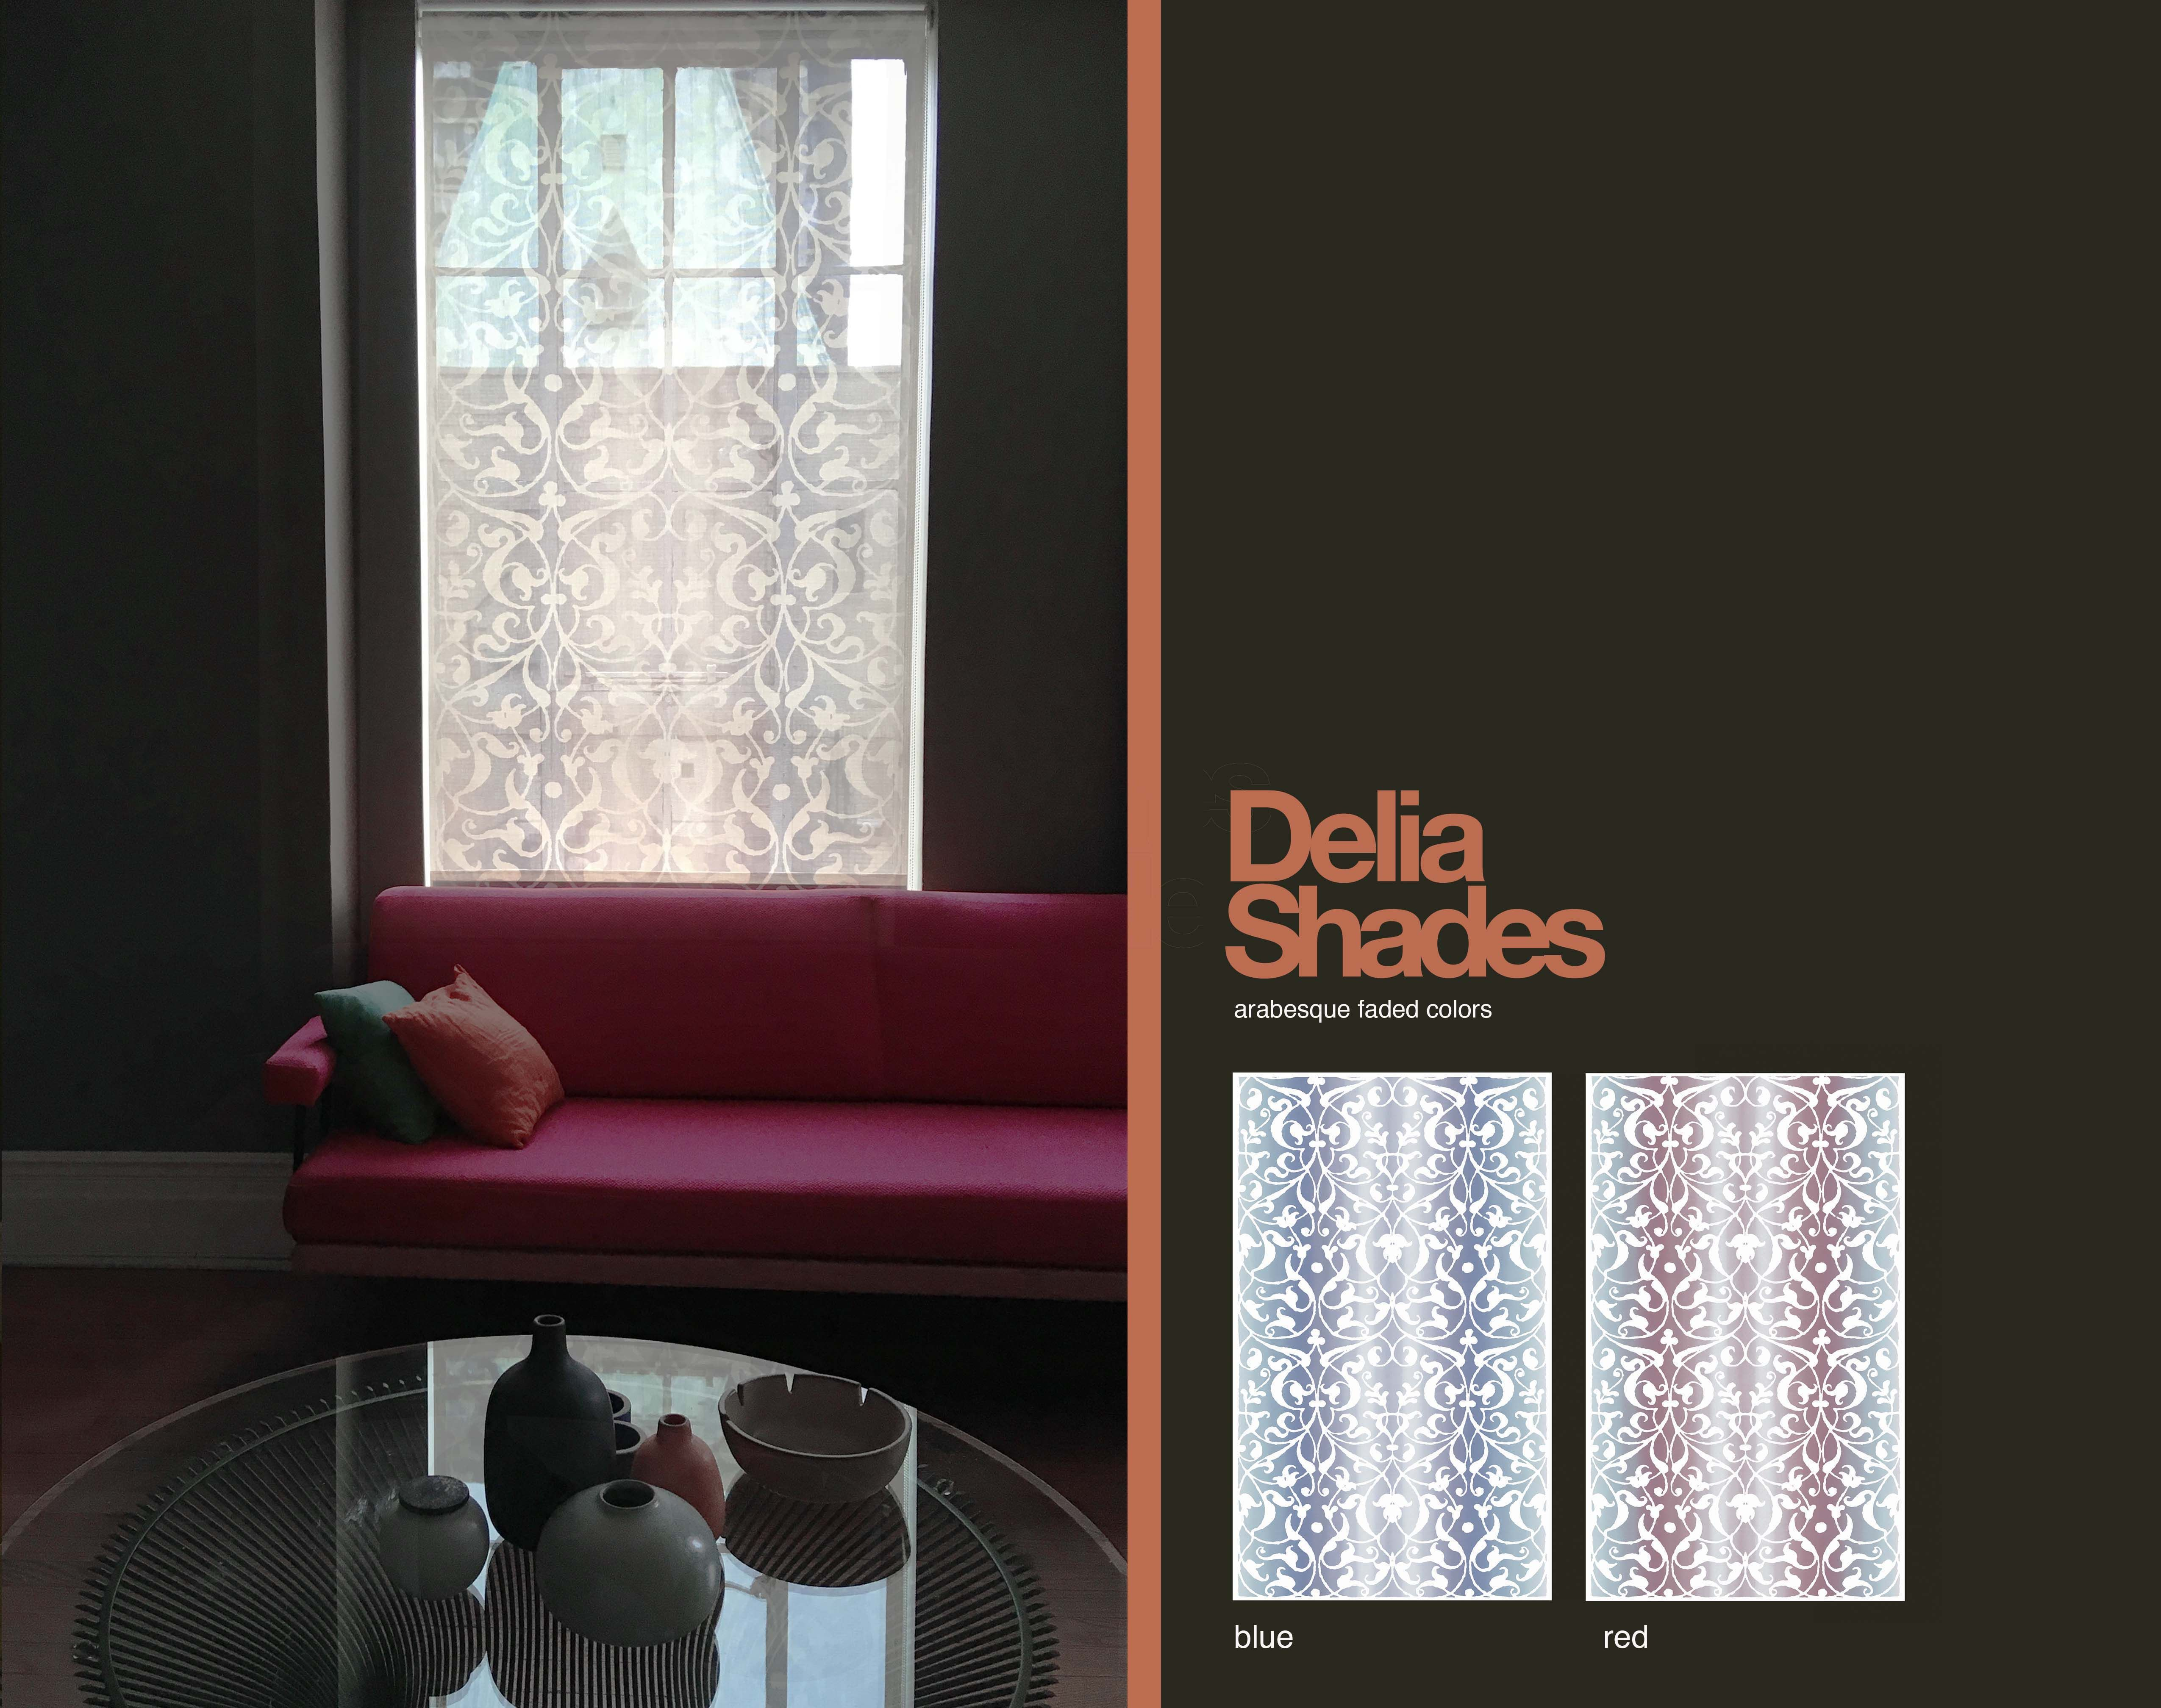 Popular window coverings  new from delia shades an addition to the popular